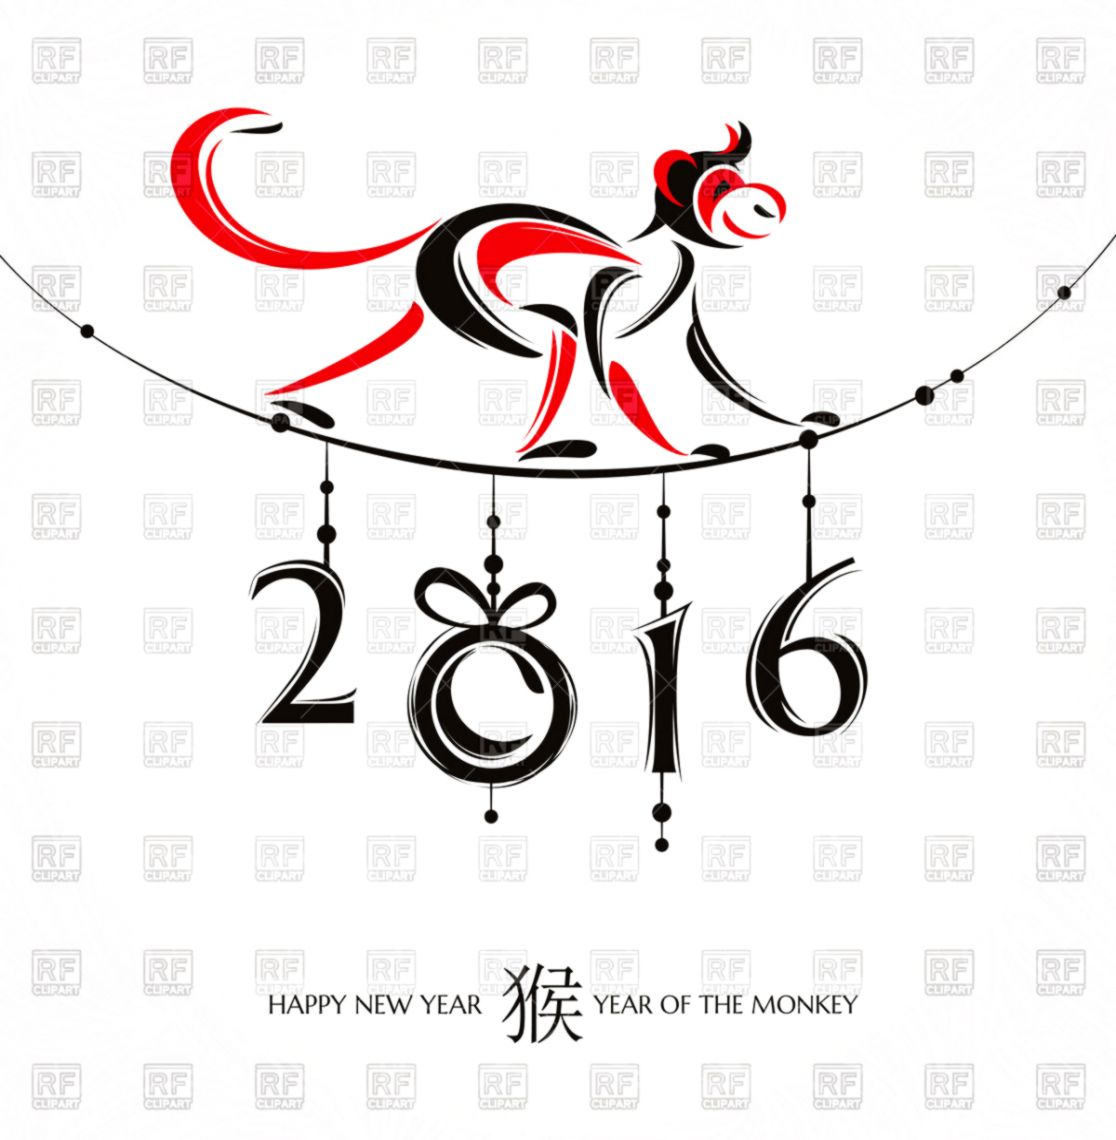 Chinese new year 2015 clipart jpg royalty free library Happy New Year 2015 Clip Art | Select Wallpapers jpg royalty free library